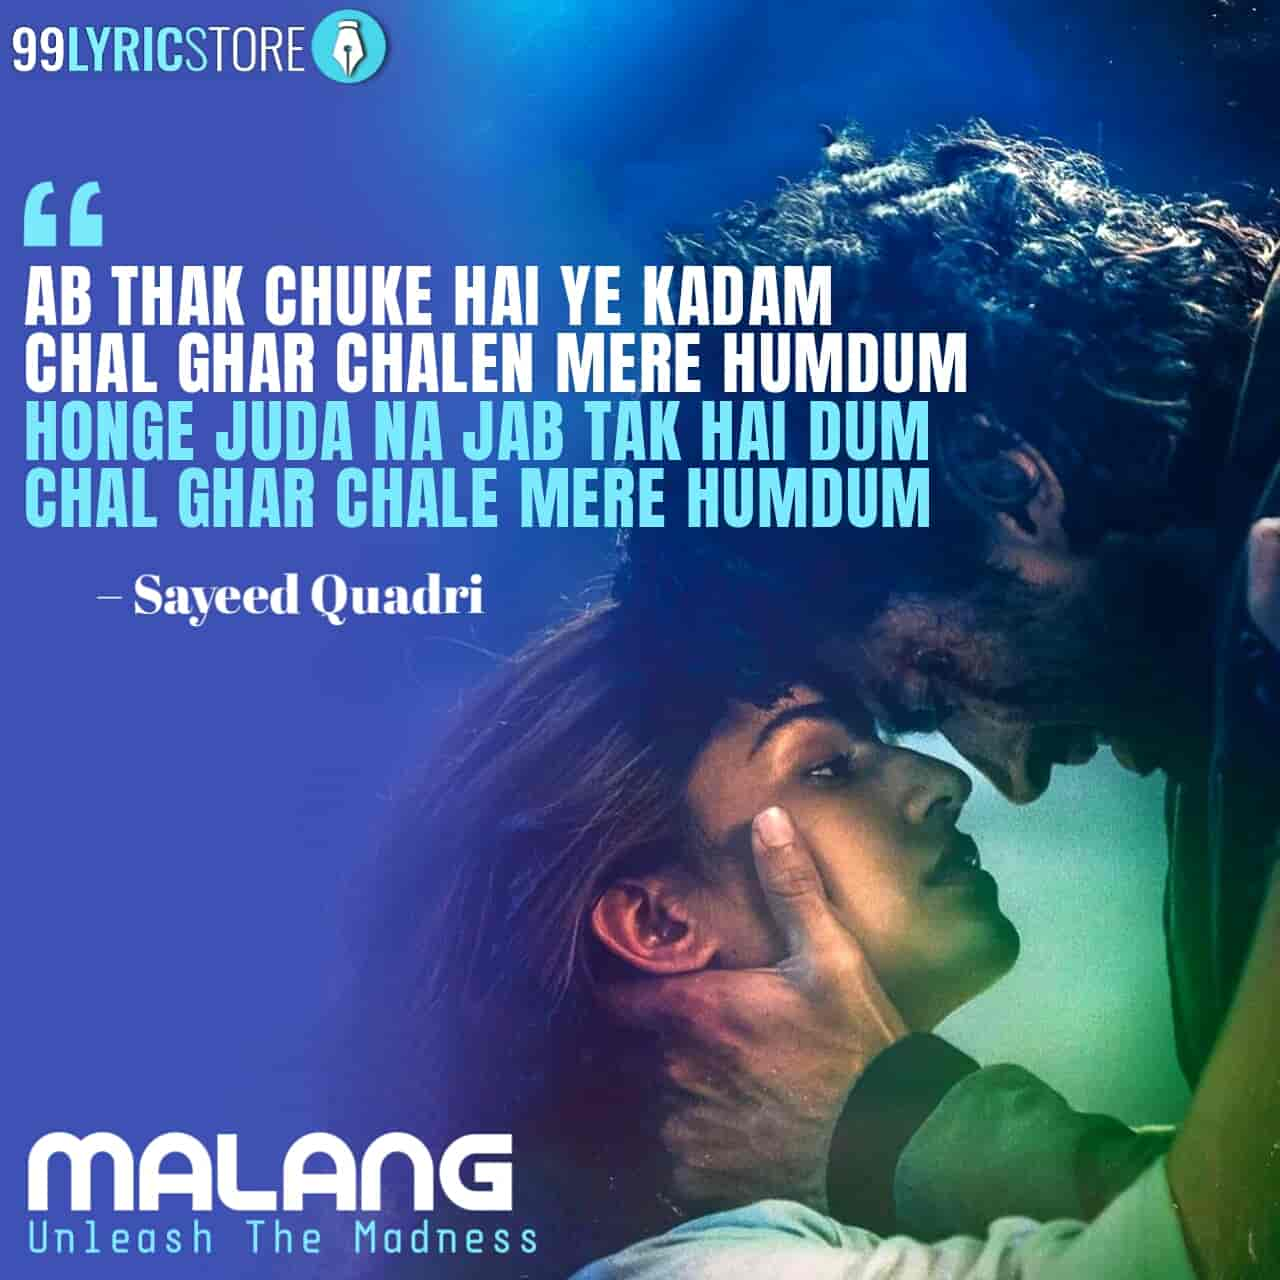 Chal Ghar Chalen Lyrics Images Sung by Arijit Singh from movie Malang